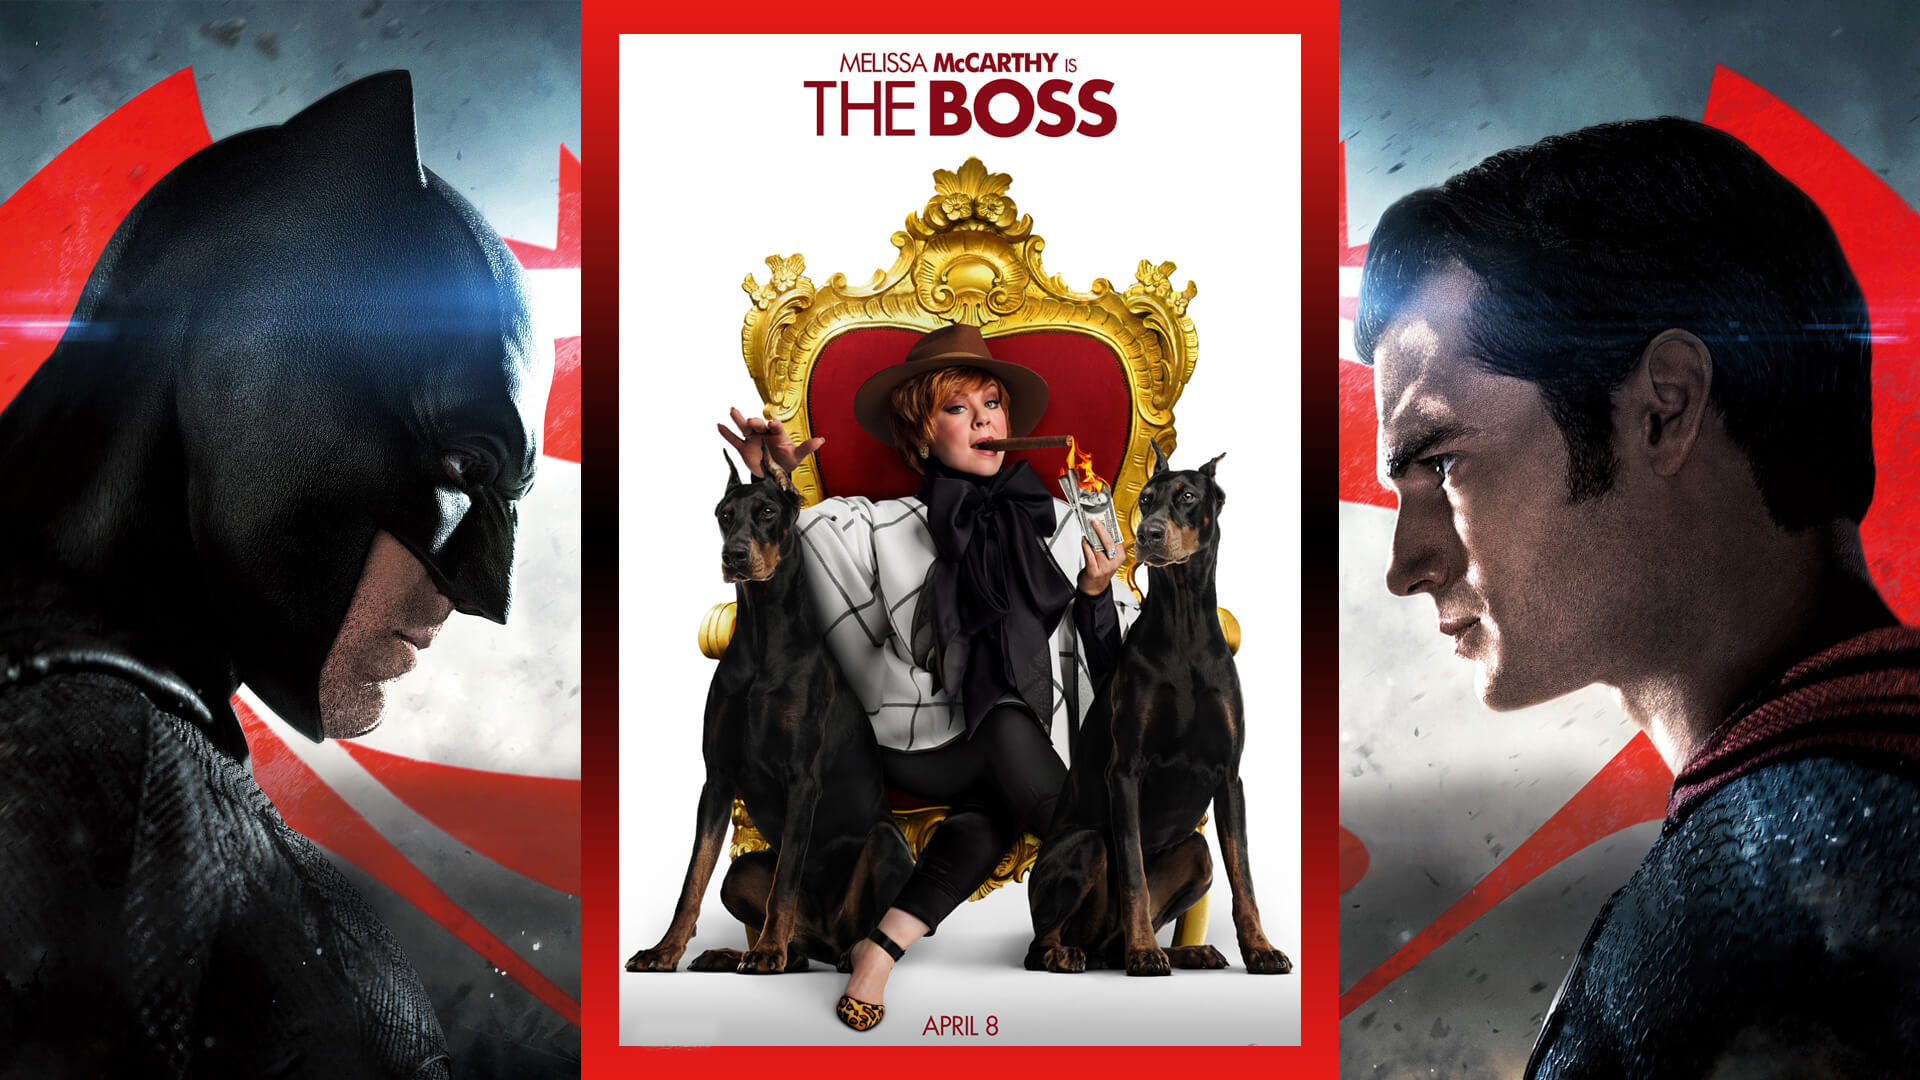 Weekend Box Office Predictions For April 8-10th